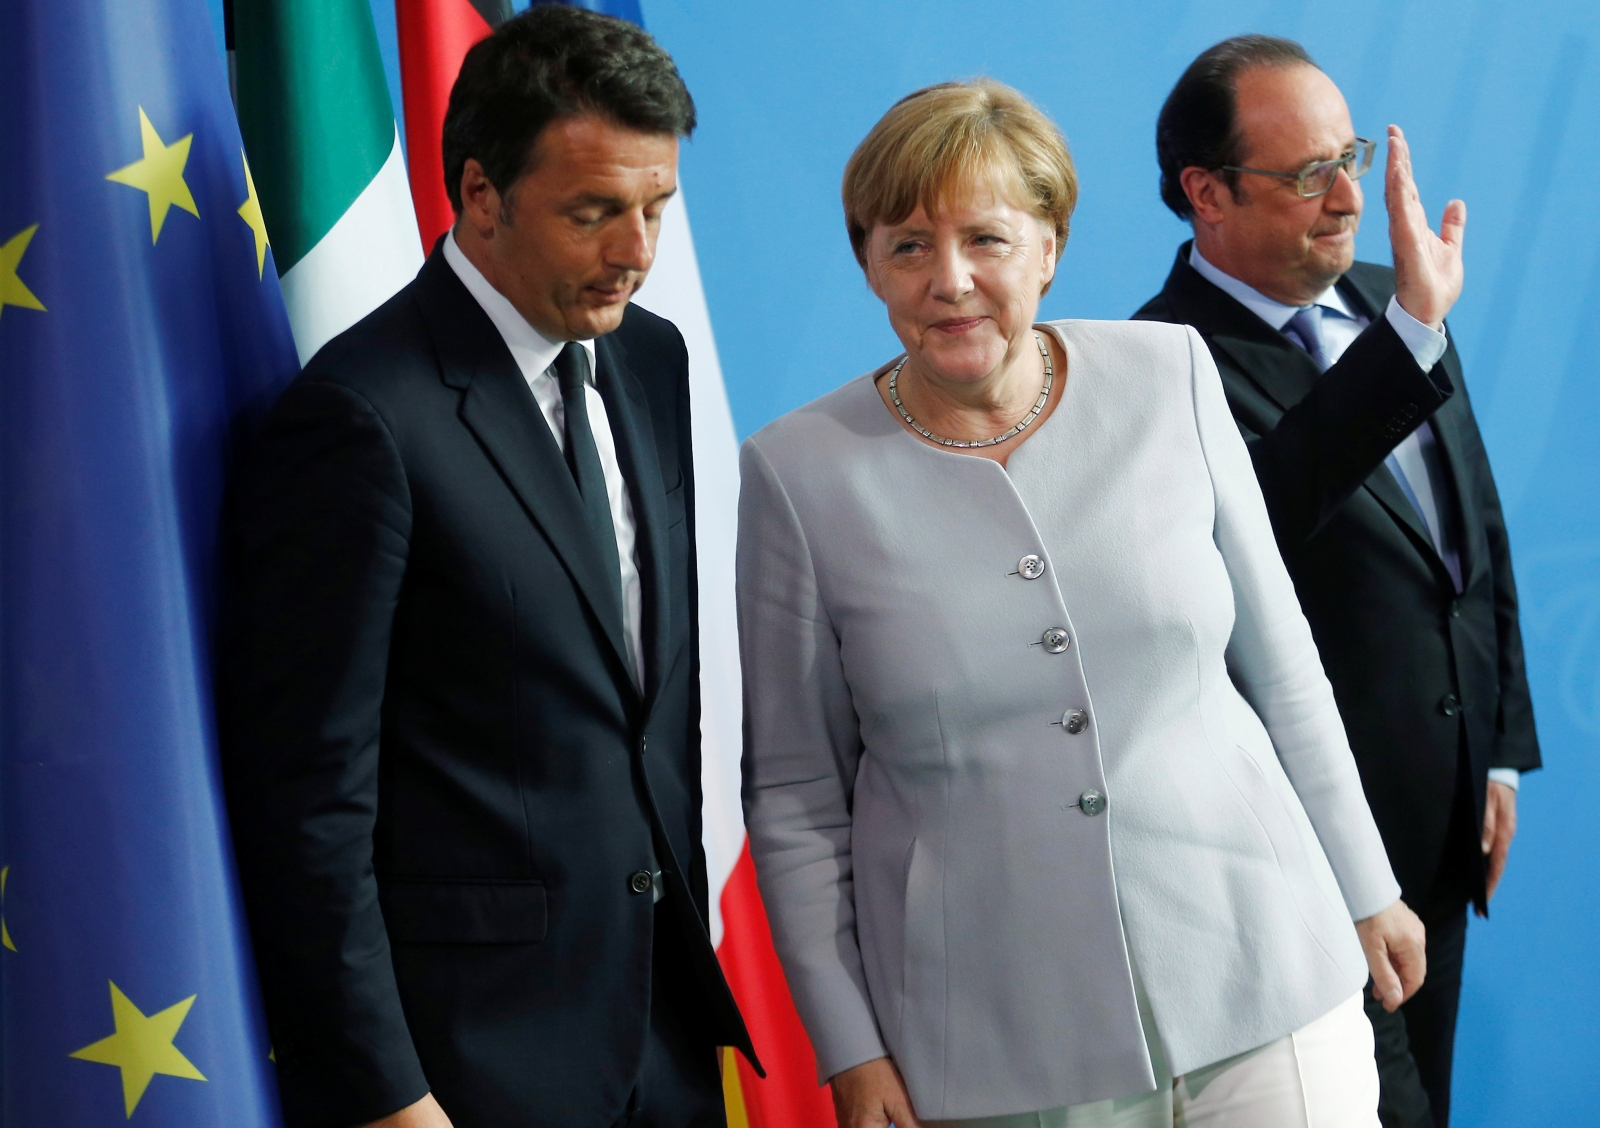 Brexit and European leaders